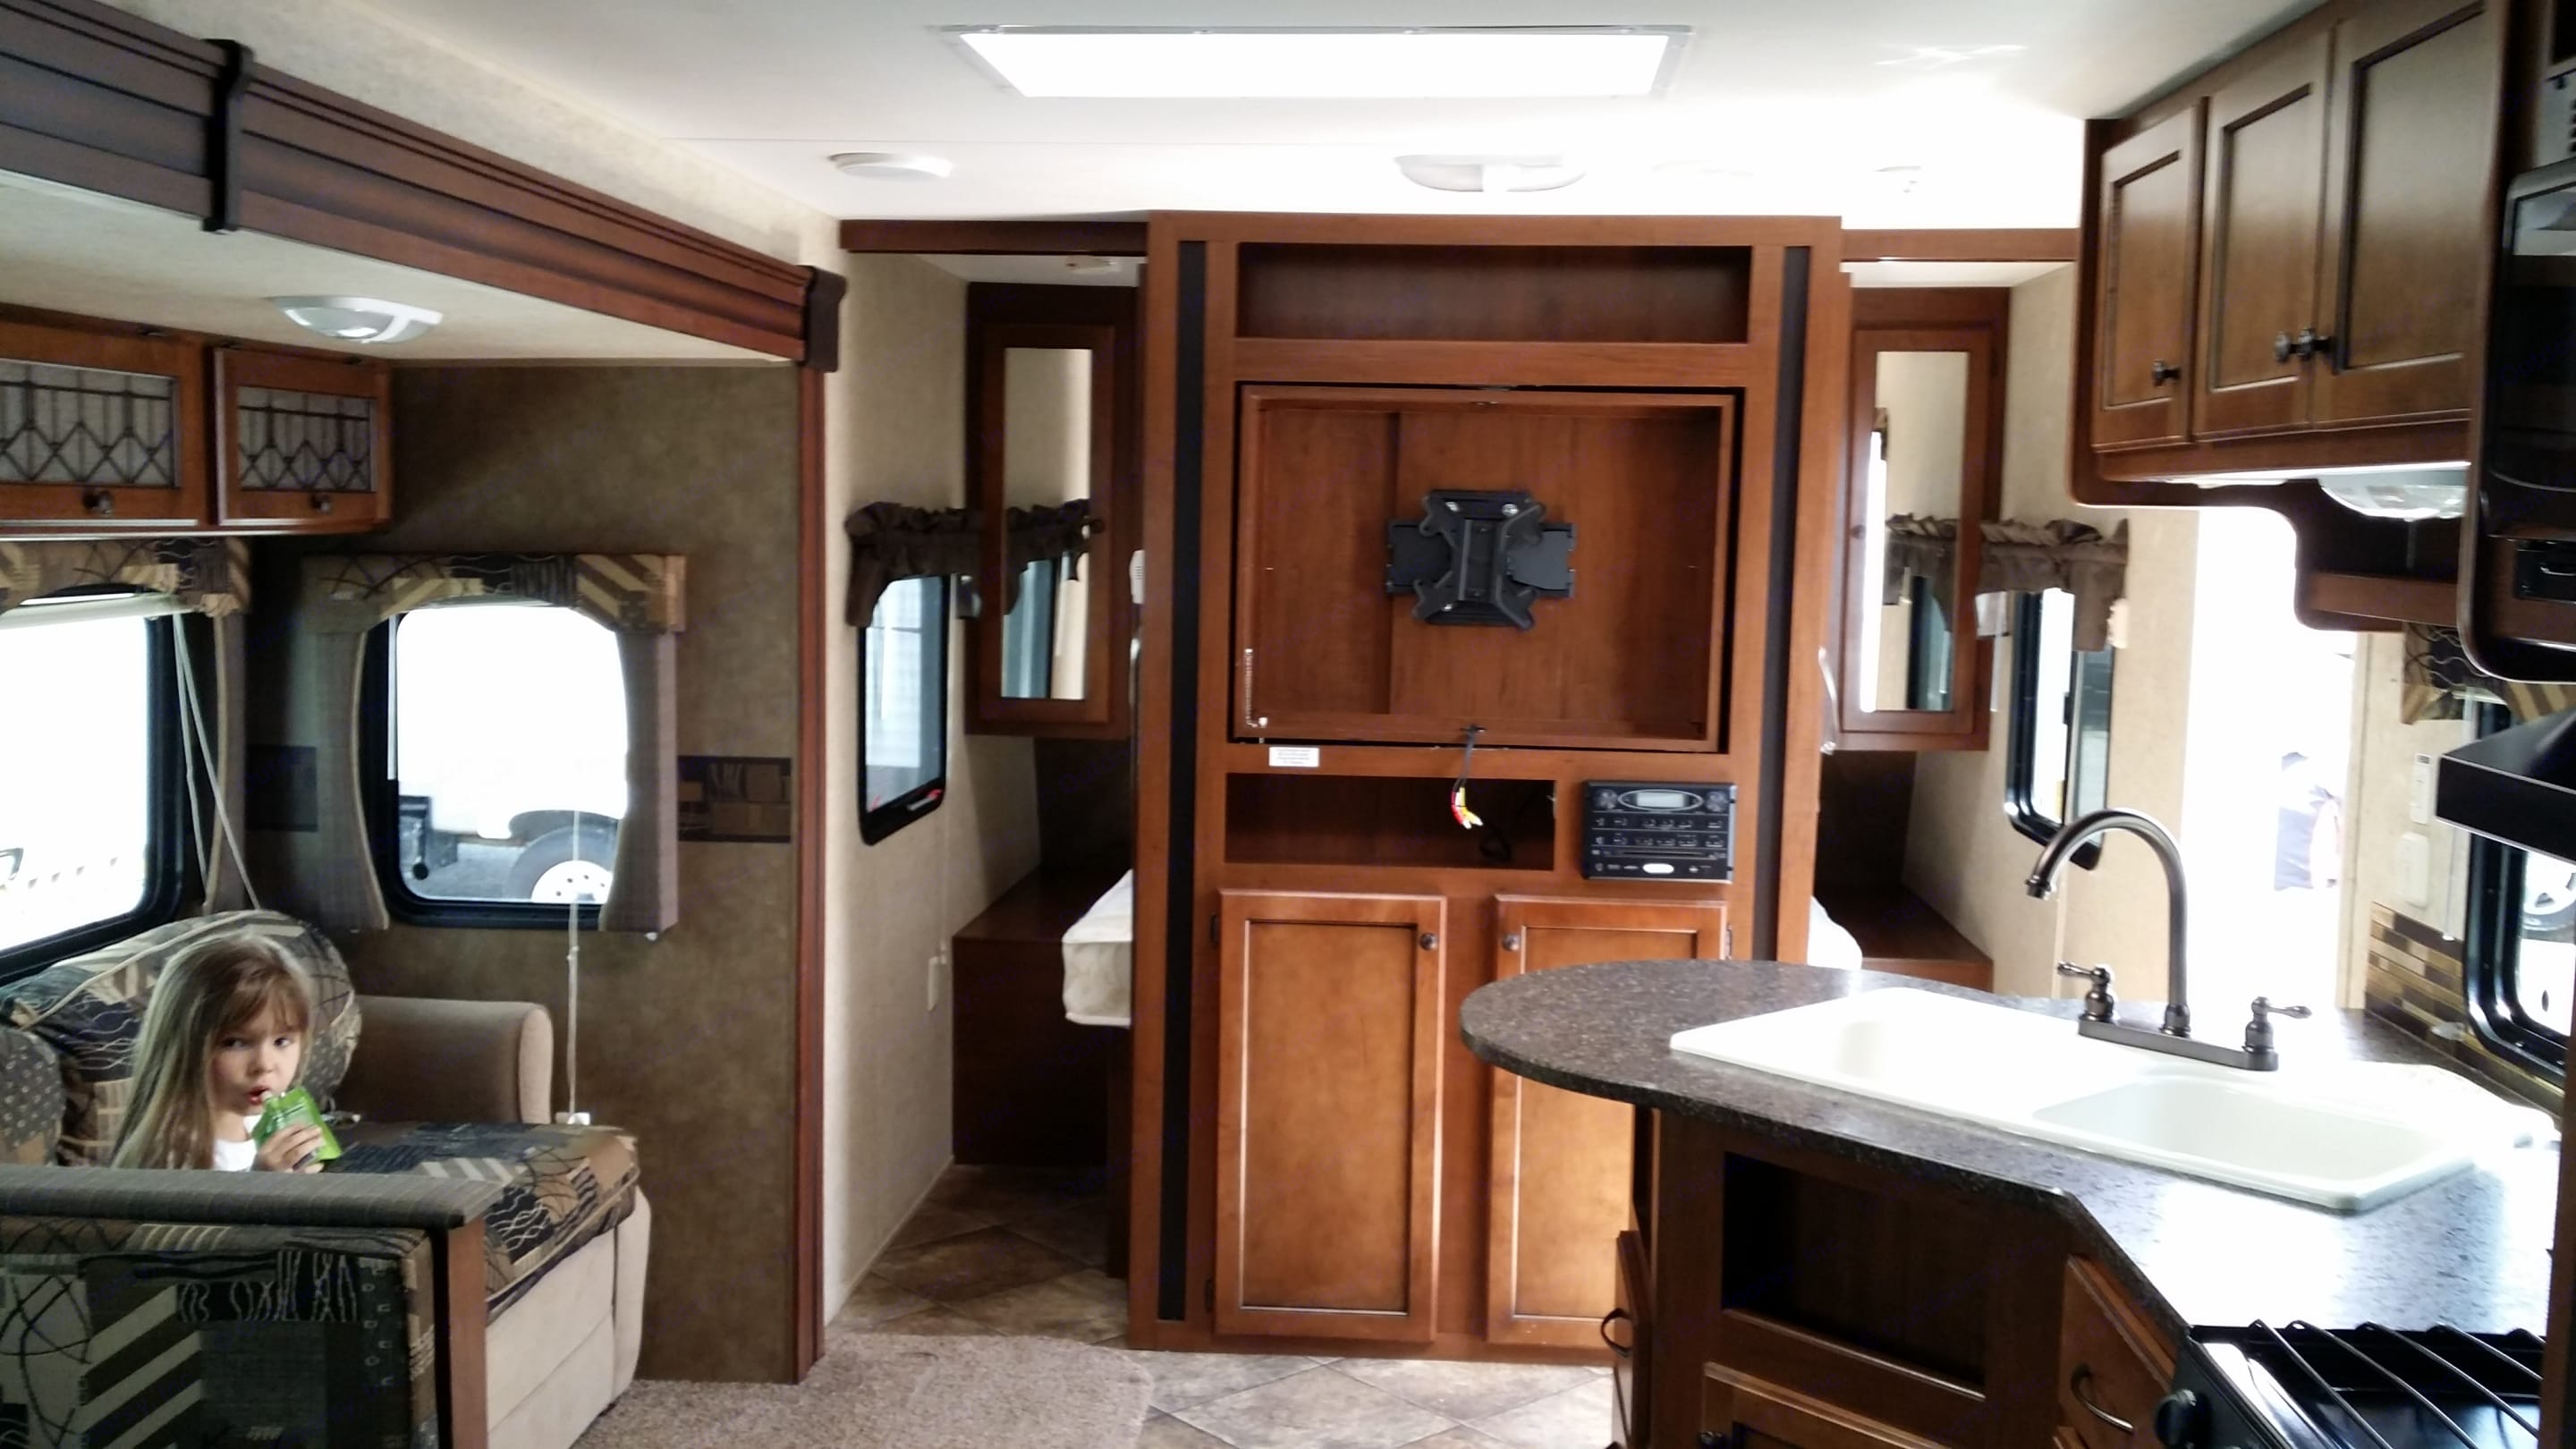 Tv is included with the trailer rental. Kids can bring their Playstation or Xbox in case it rains. . Heartland Prowler 2013